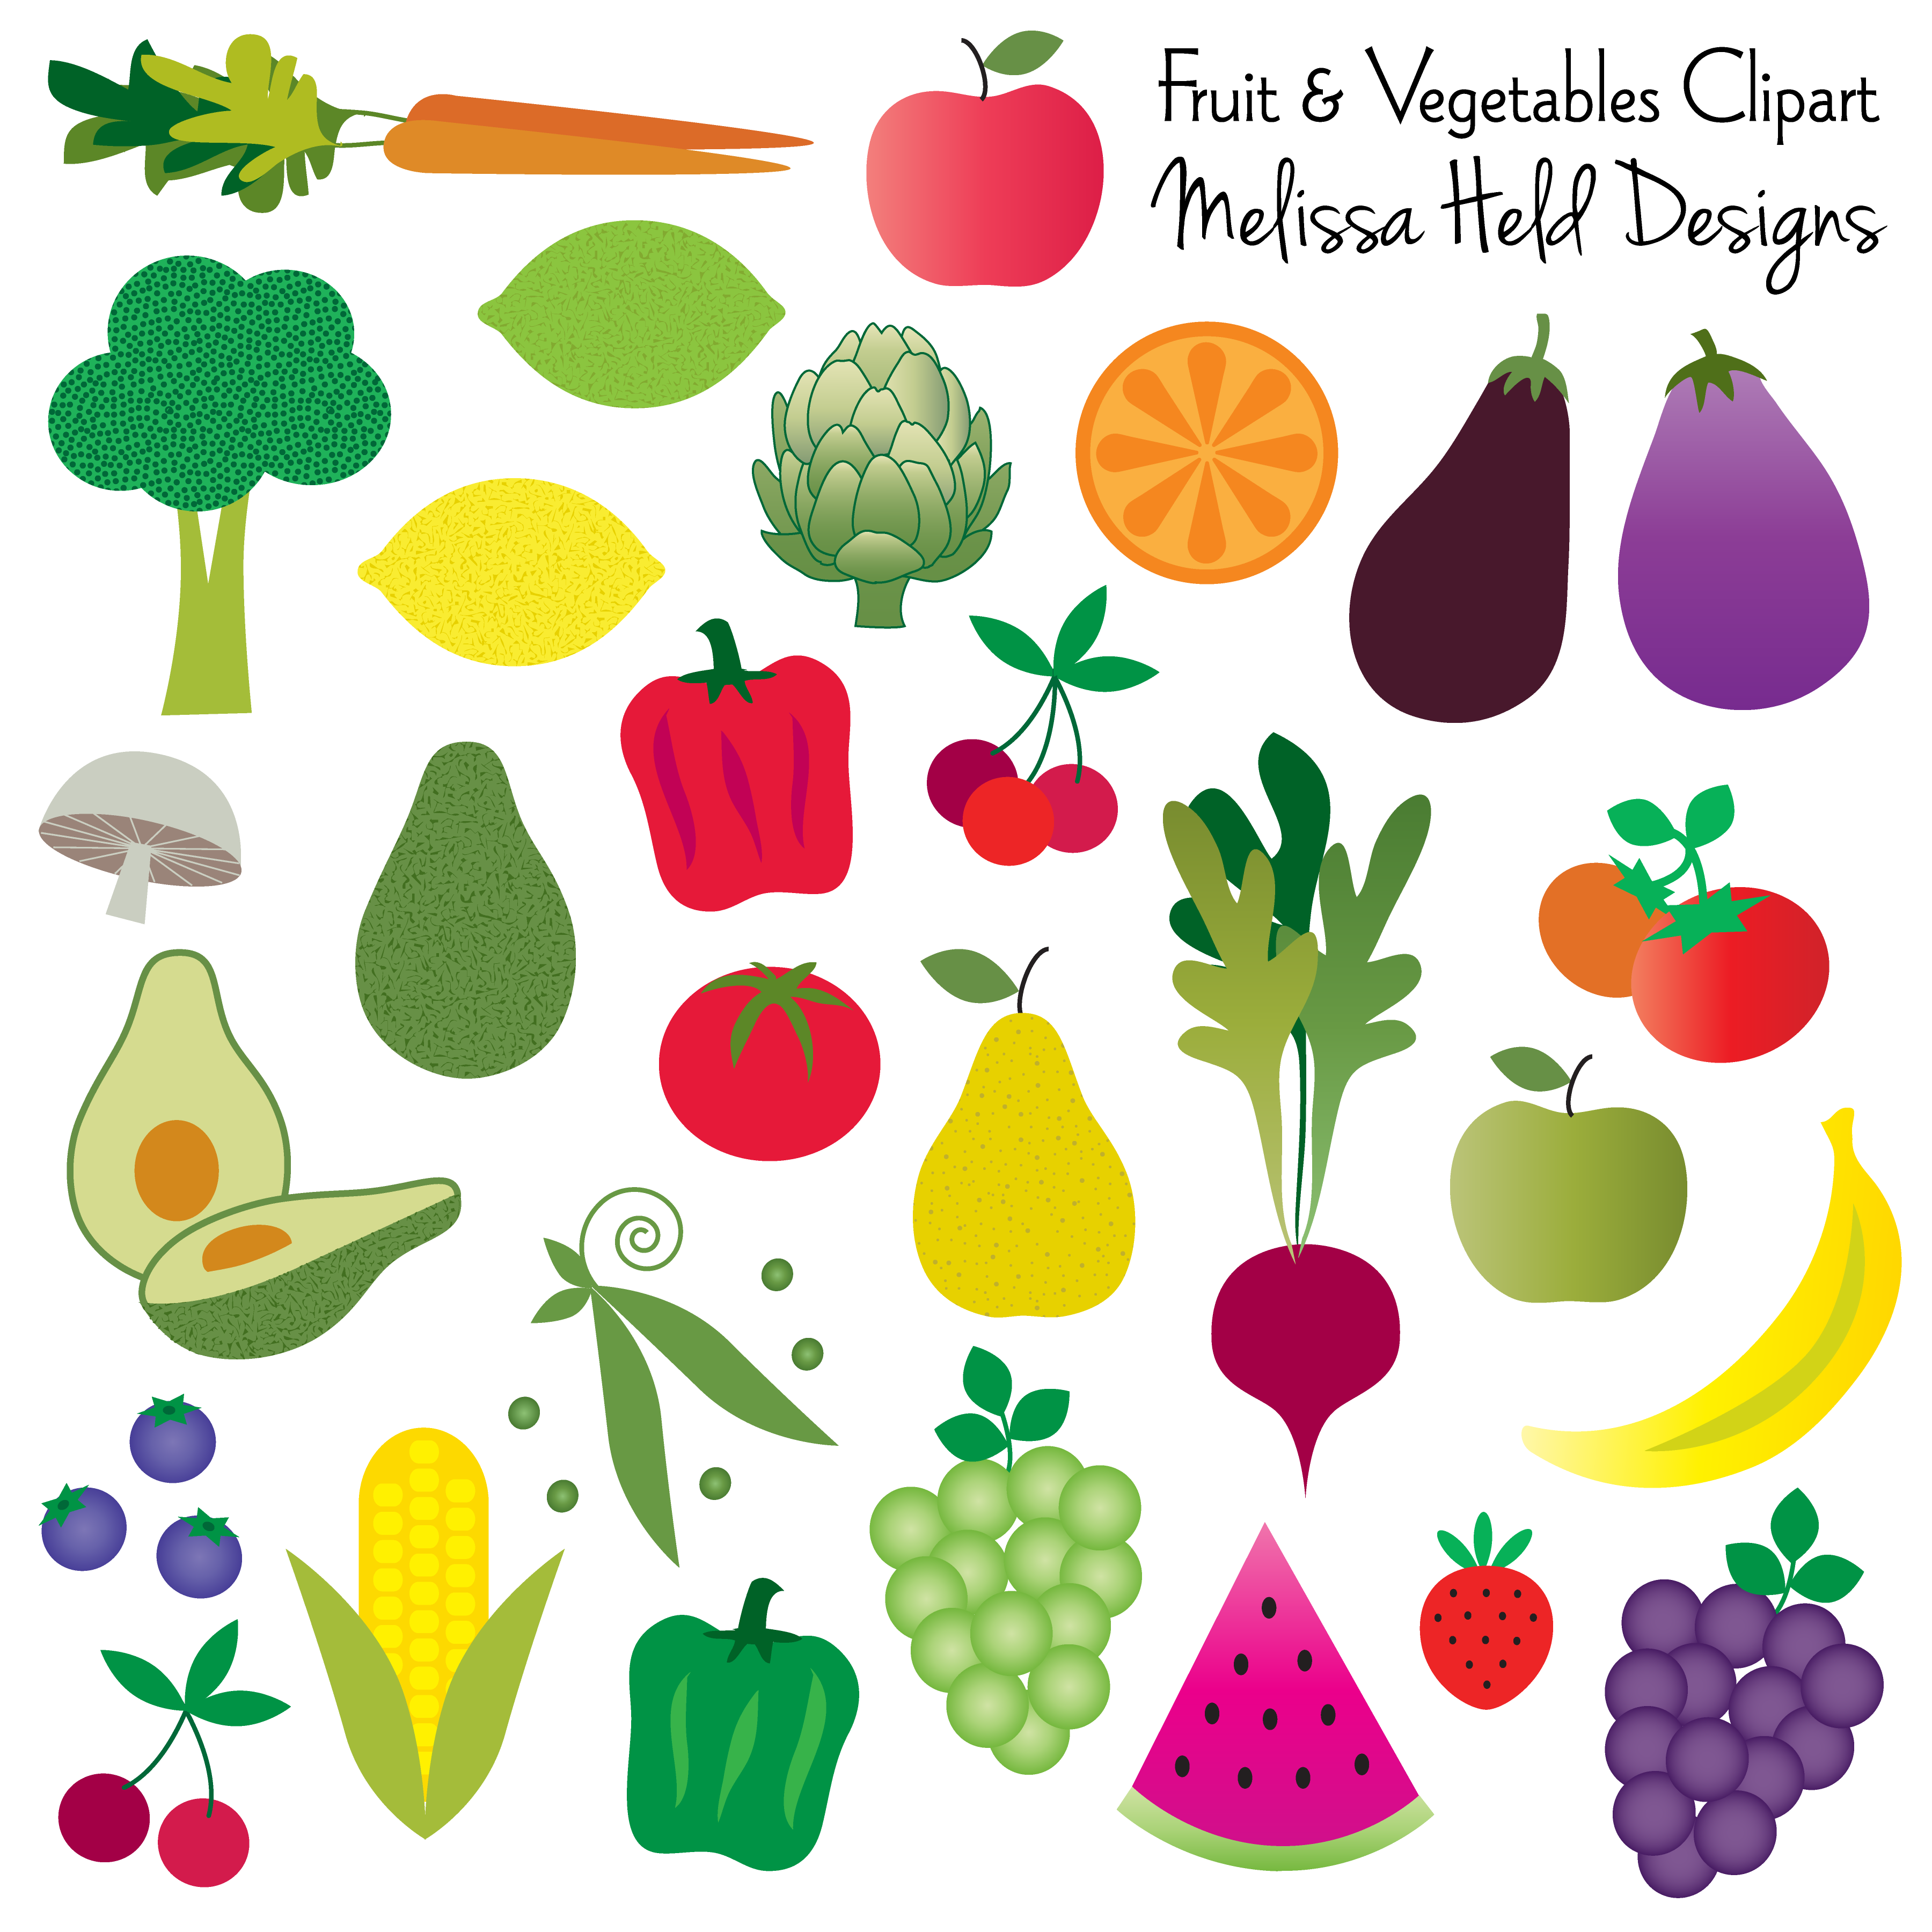 Free clipart pictures of fruits and vegetables. To printable images